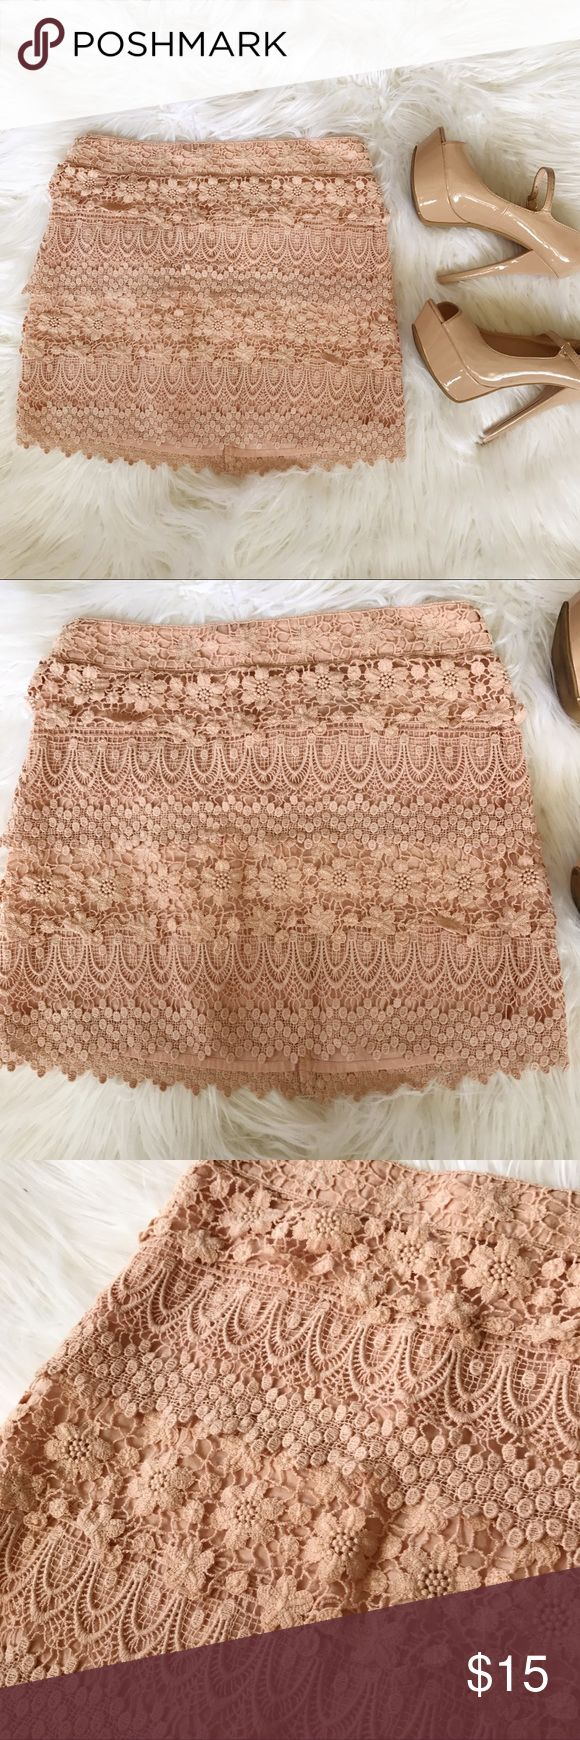 """🎉 HP! 🎉 Rose gold Floral Crotchet Mini Skirt This skirt is beautiful but it's a little big on me. Only worn a few times. 14 1/2"""" layered floral Crotchet fabric. Zips in the back. Pair with nude heels and white button up! Color is pink/tan ish. Not Free People. Only listed for more exposure Free People Skirts Mini"""